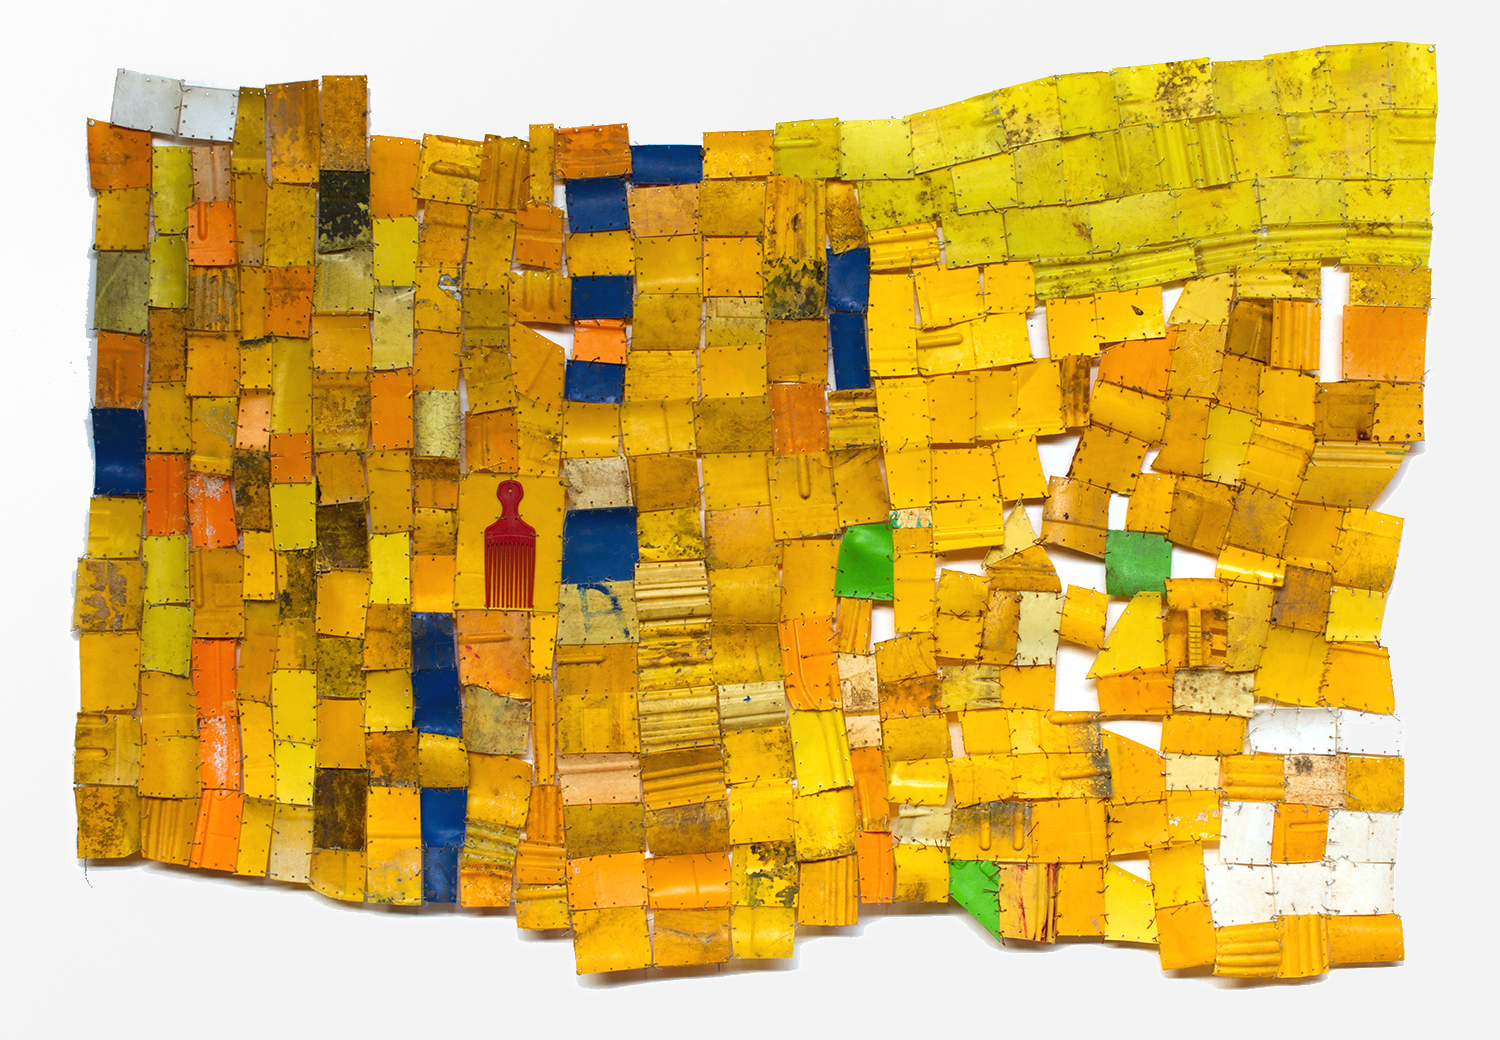 Serge Attukwei Clottey   Beauty and Presence , 2014 plastic and wires 75 x 51 inches 190.5 x 129.5 cm